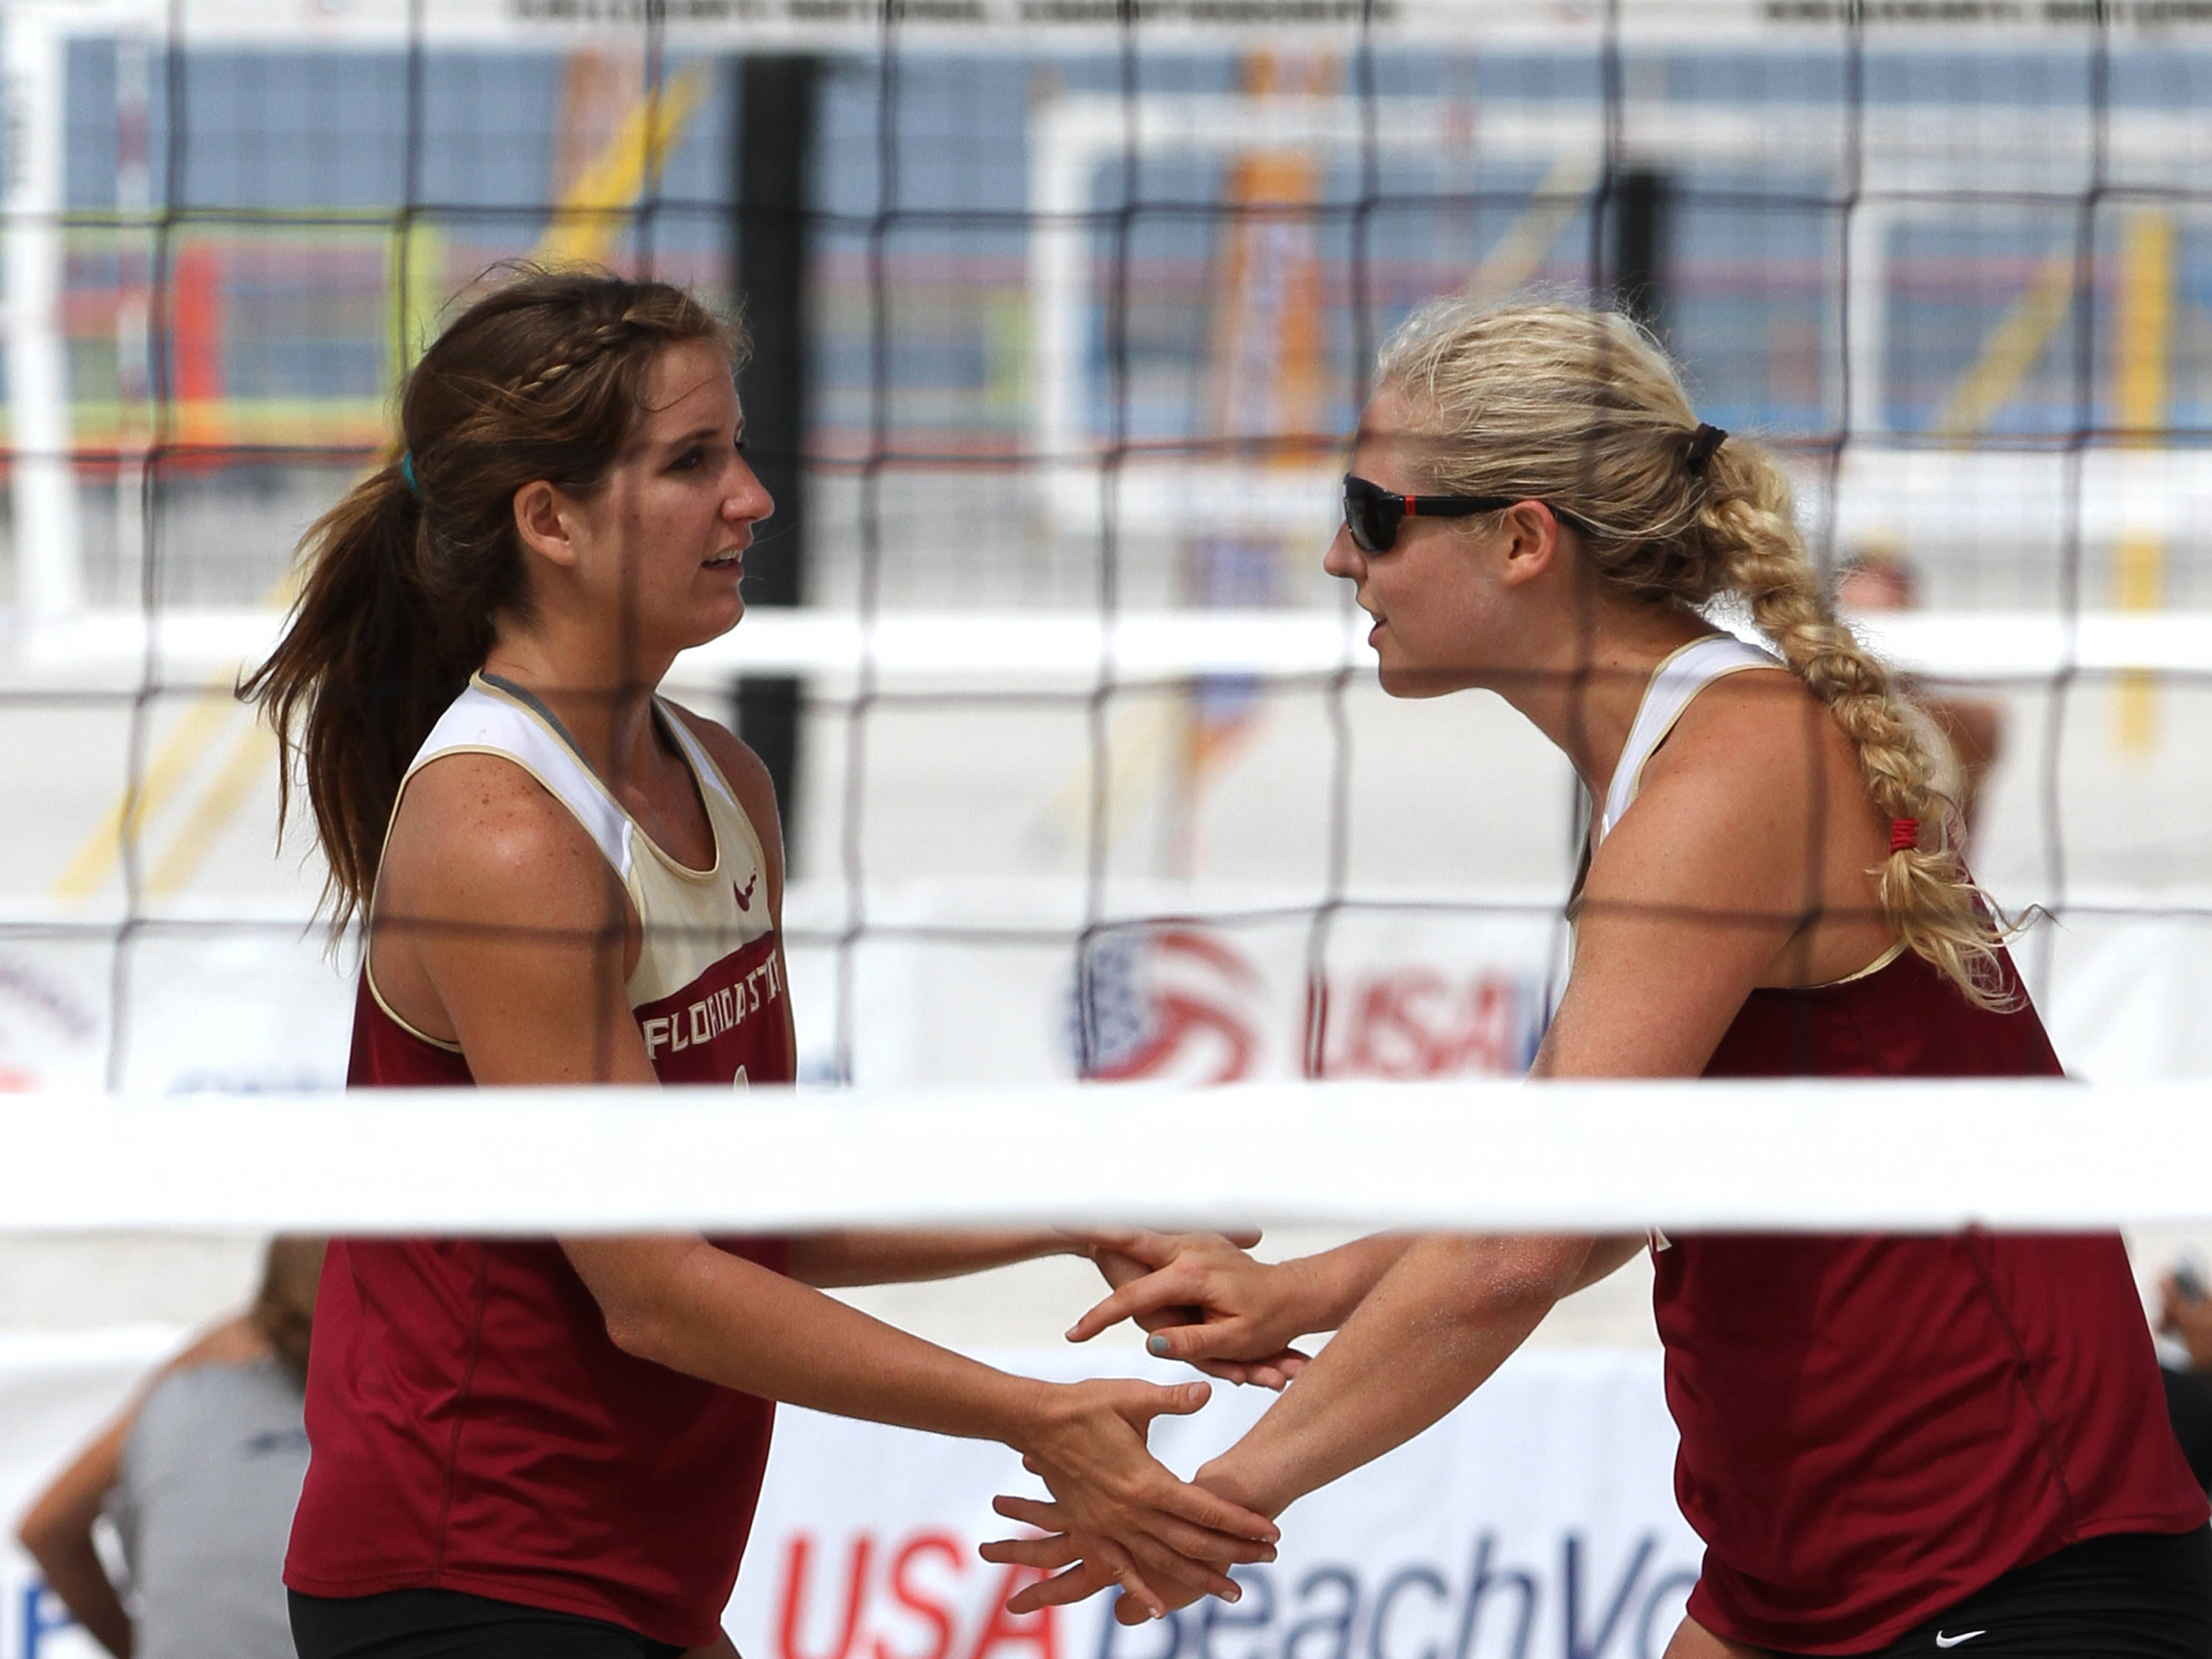 Aurora Davis (2), Katherine Plessy (32), AVCA Collegiate Sand Volleyball National Championships,  Gulf Shores, Alabama,05/03/13 . (Photo by Steve Musco)